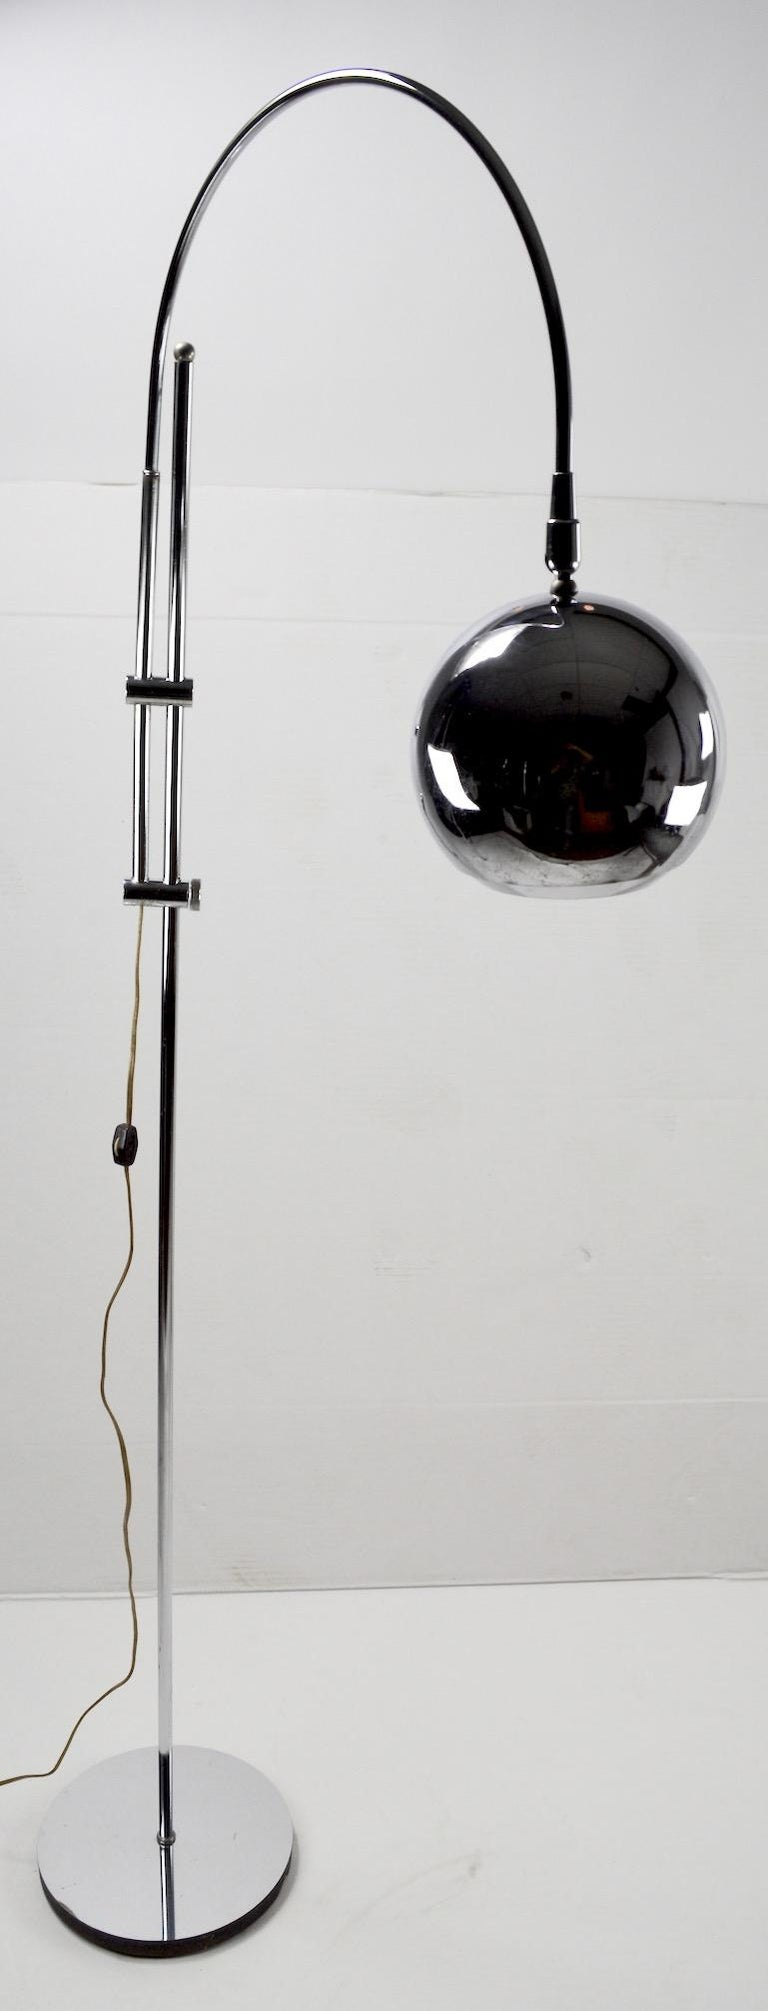 Nice quality adjustable chrome floor lamp. This floor lamp can be raised, lowered, the arc arm swivels, and the ball shade pivots , allowing for infinite adjustments to position the light exactly where you want it. Lamp accepts a standard screw in